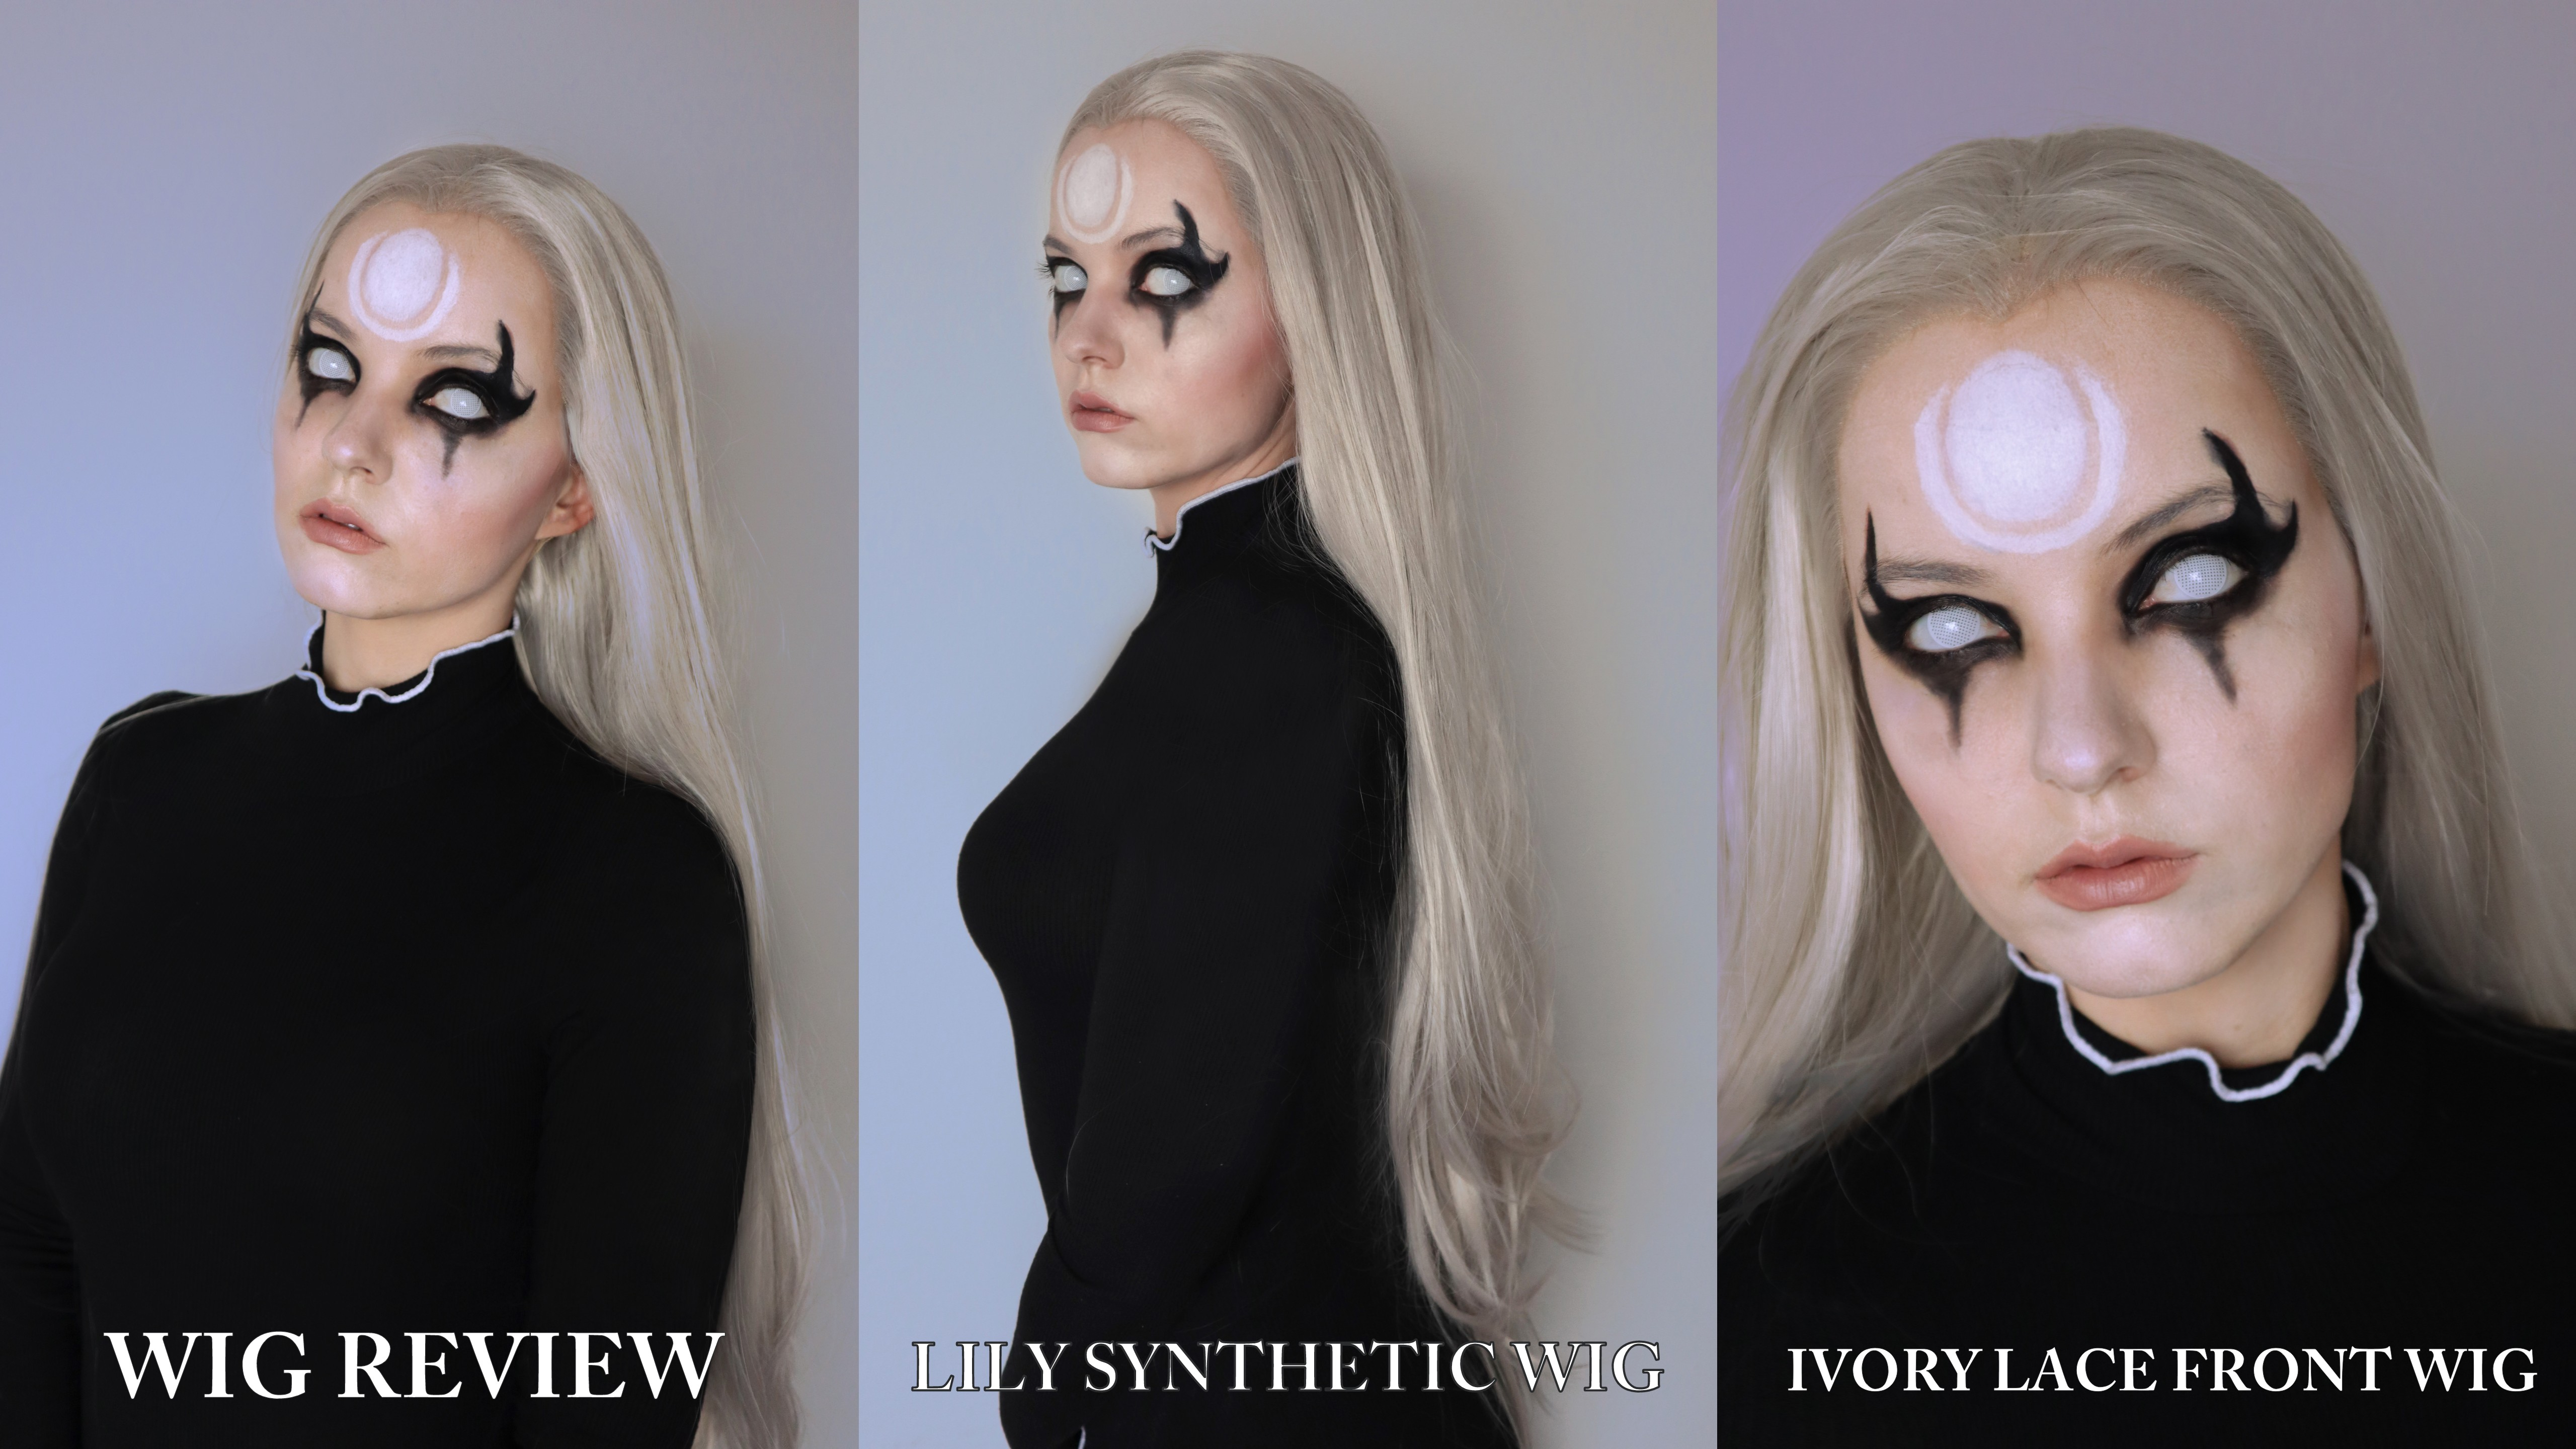 Wig review: SADIE (LYS011) Lace front from Lily Synthetic Wig